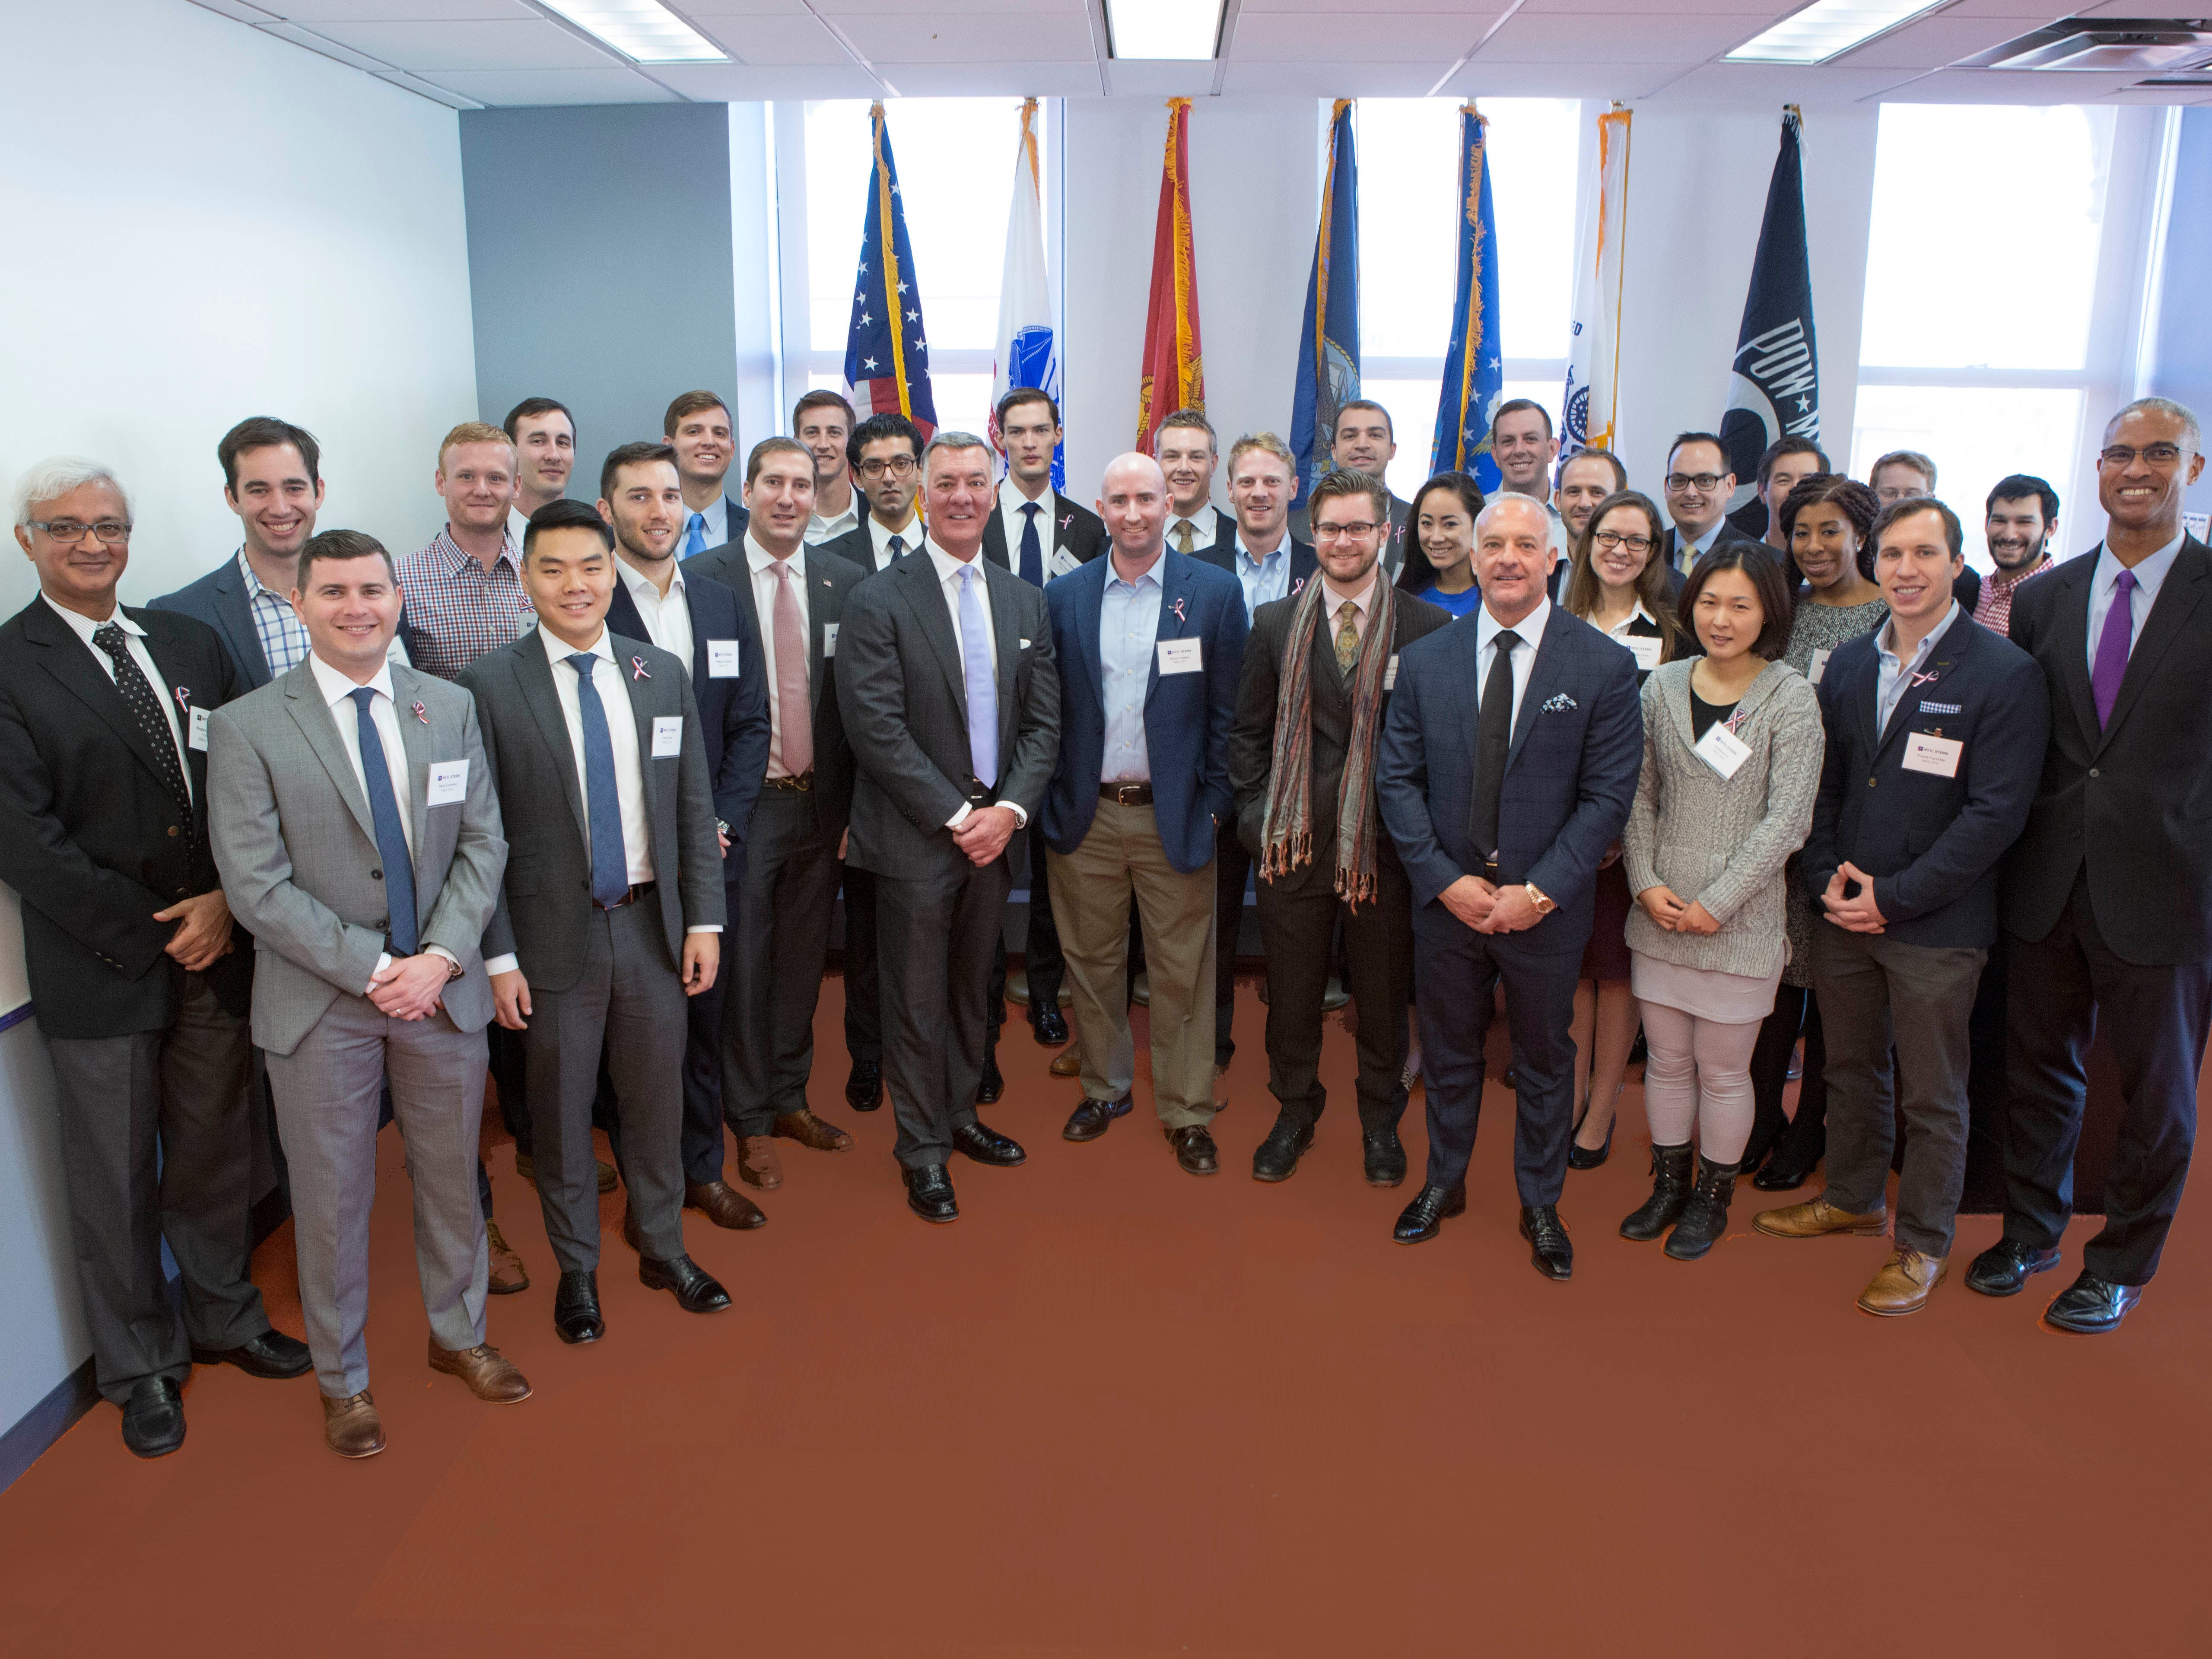 Group photo from the Fertitta Veterans Scholar reception